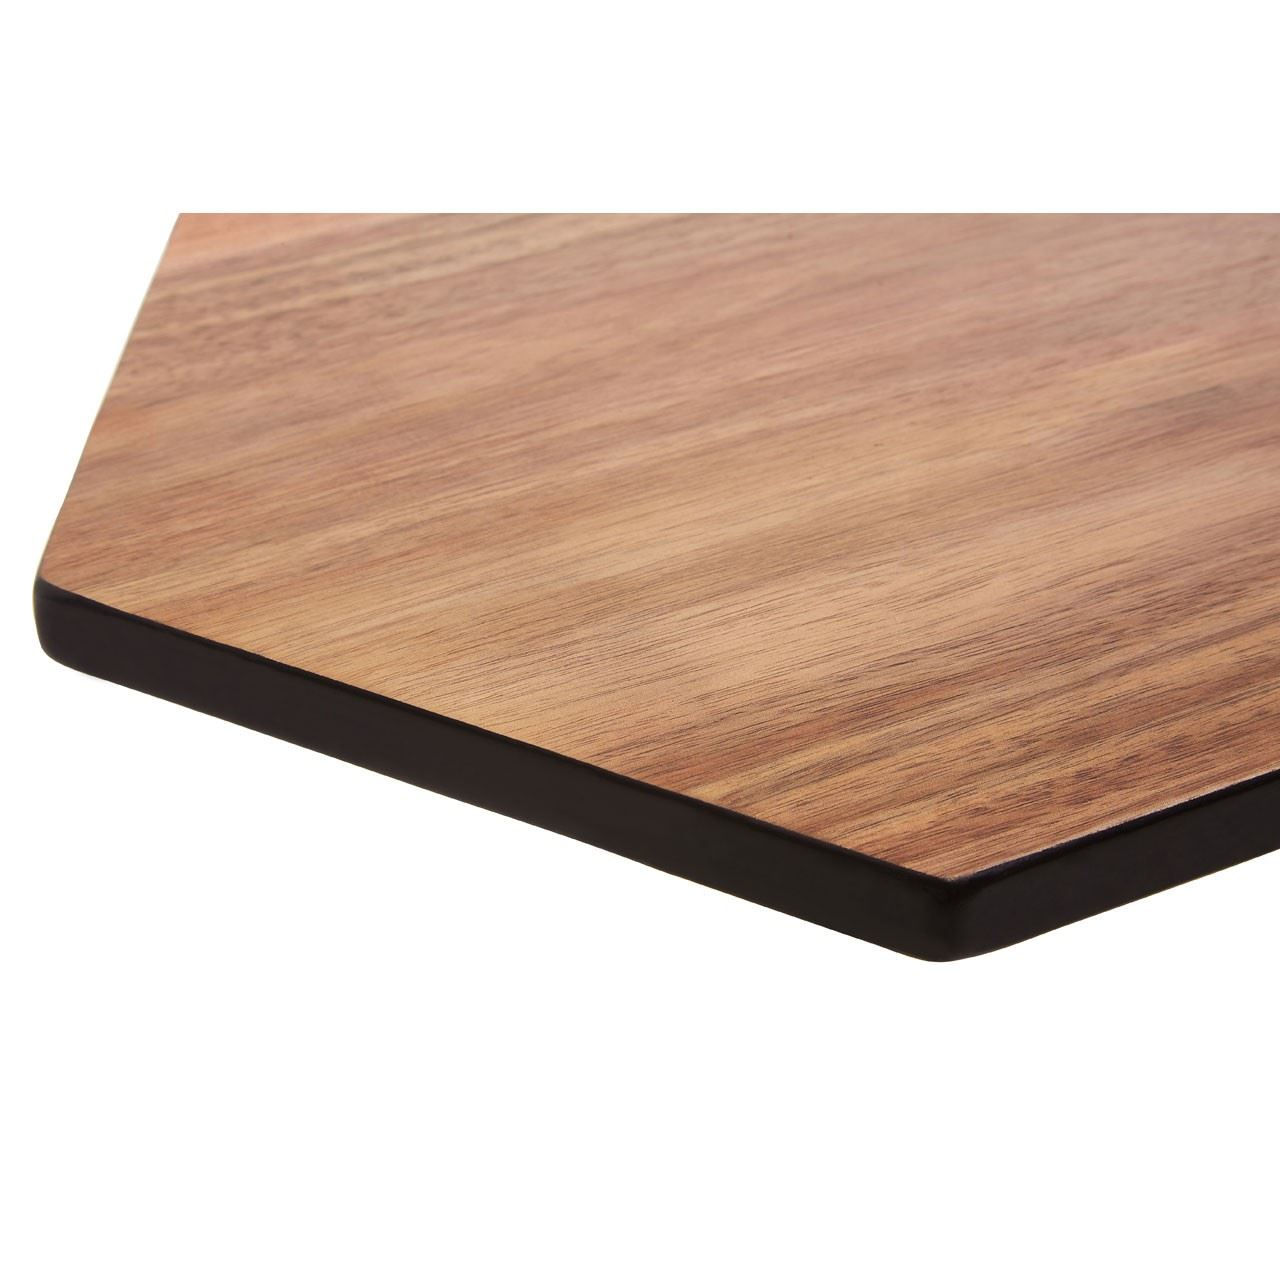 Chopping-Boards-Wooden-Cutting-Serving-Naturally-Antibacterial thumbnail 22